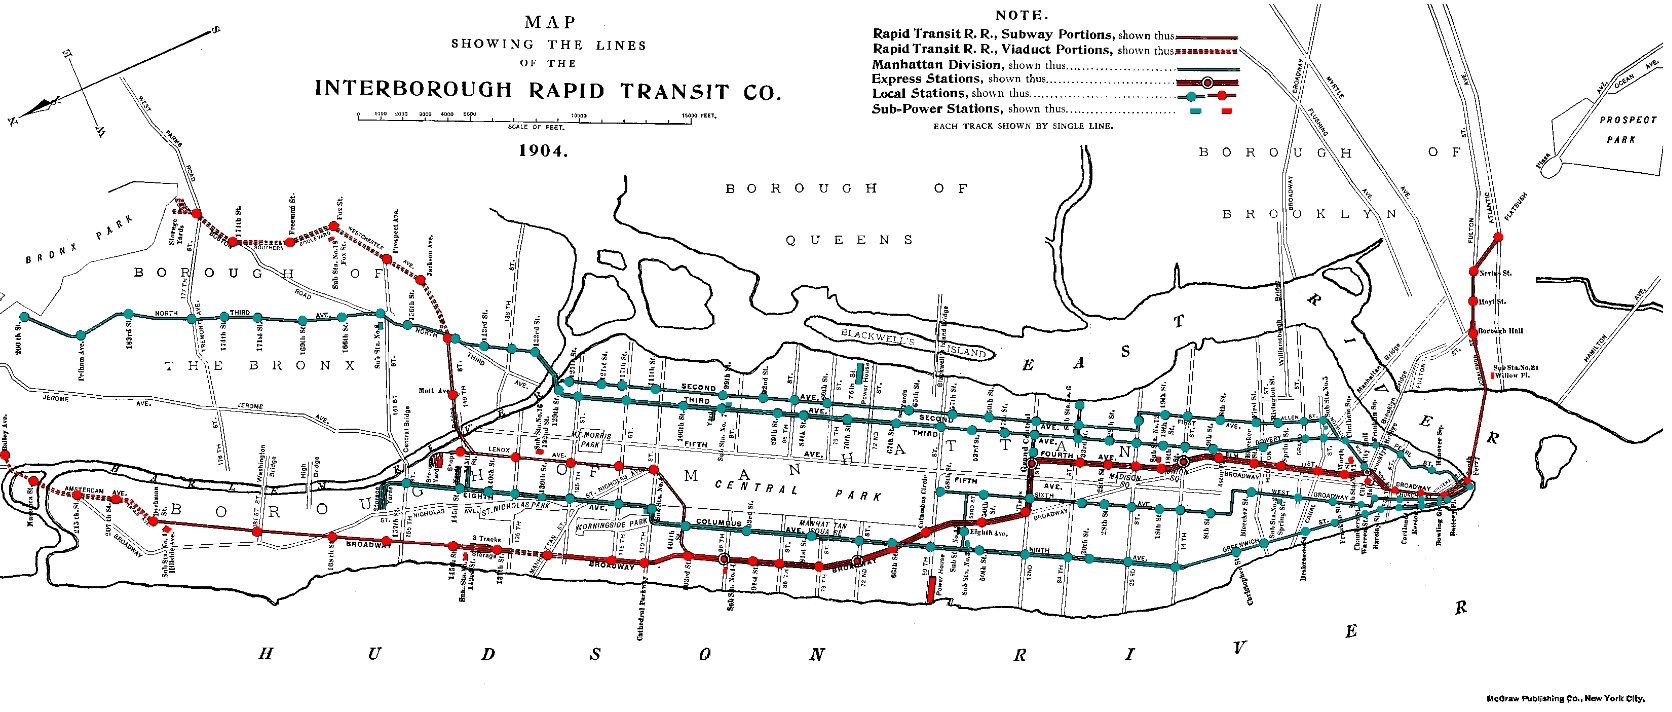 1900 Subway Map New York City.Old New York In Photos 23 Subway Construction 1901 Broadway